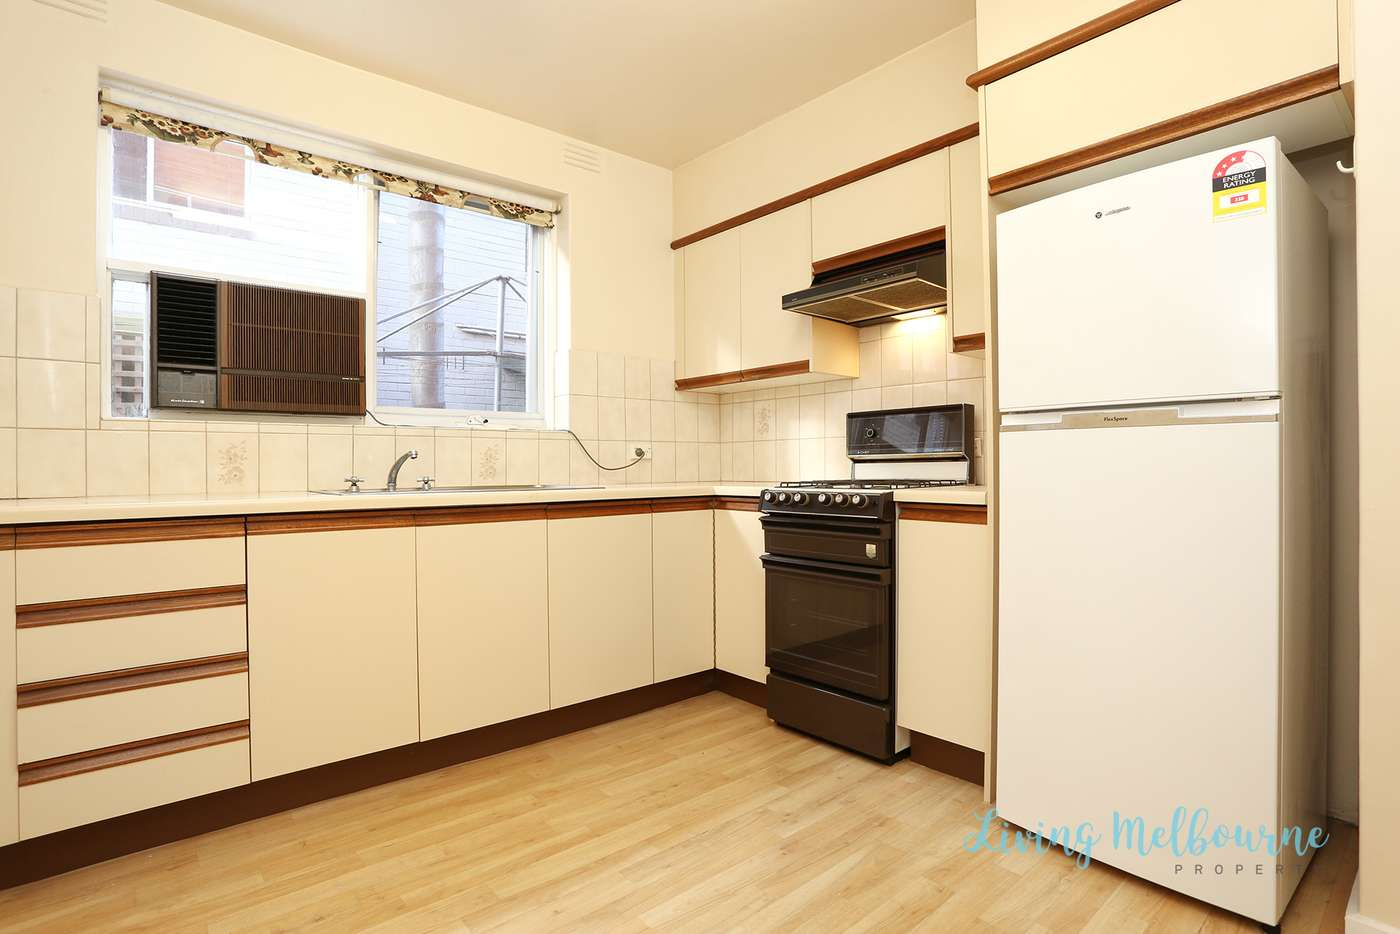 Main view of Homely apartment listing, 8/8 Kemp Street, Thornbury VIC 3071